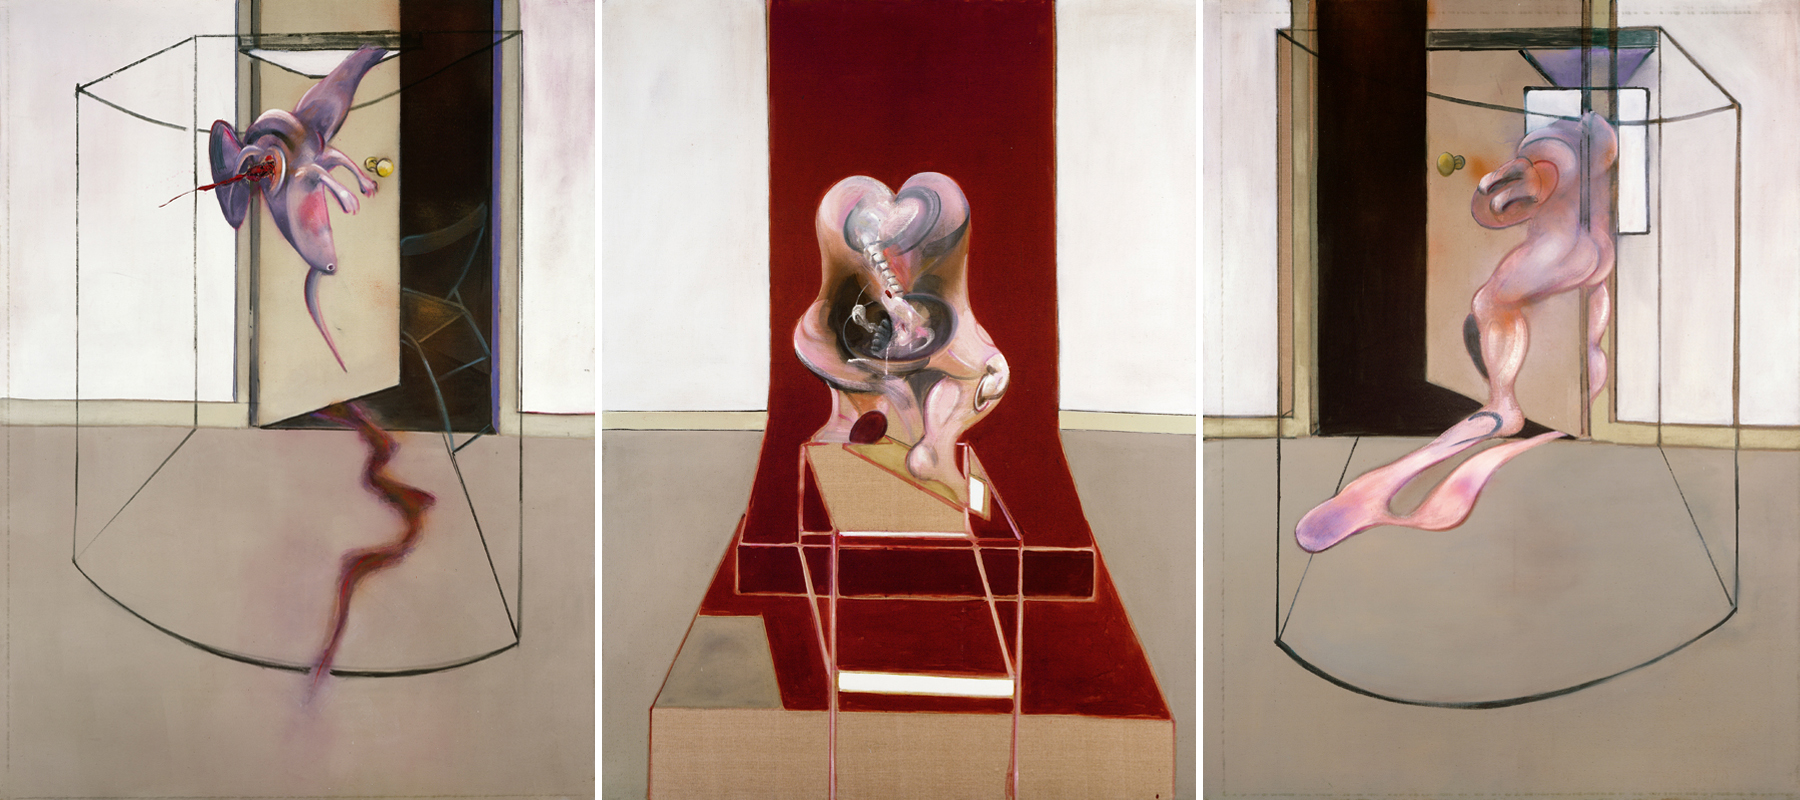 "Francis Bacon, ""Triptych Inspired by the Oresteia of Aeschylus"" (1981) © The Estate of Francis Bacon /All rights reserved / Adagp, Paris and DACS, London 2019 © The Estate of Francis Bacon. All rights reserved. DACS/Artimage 2019. Photo: Prudence Cuming Associates Ltd"